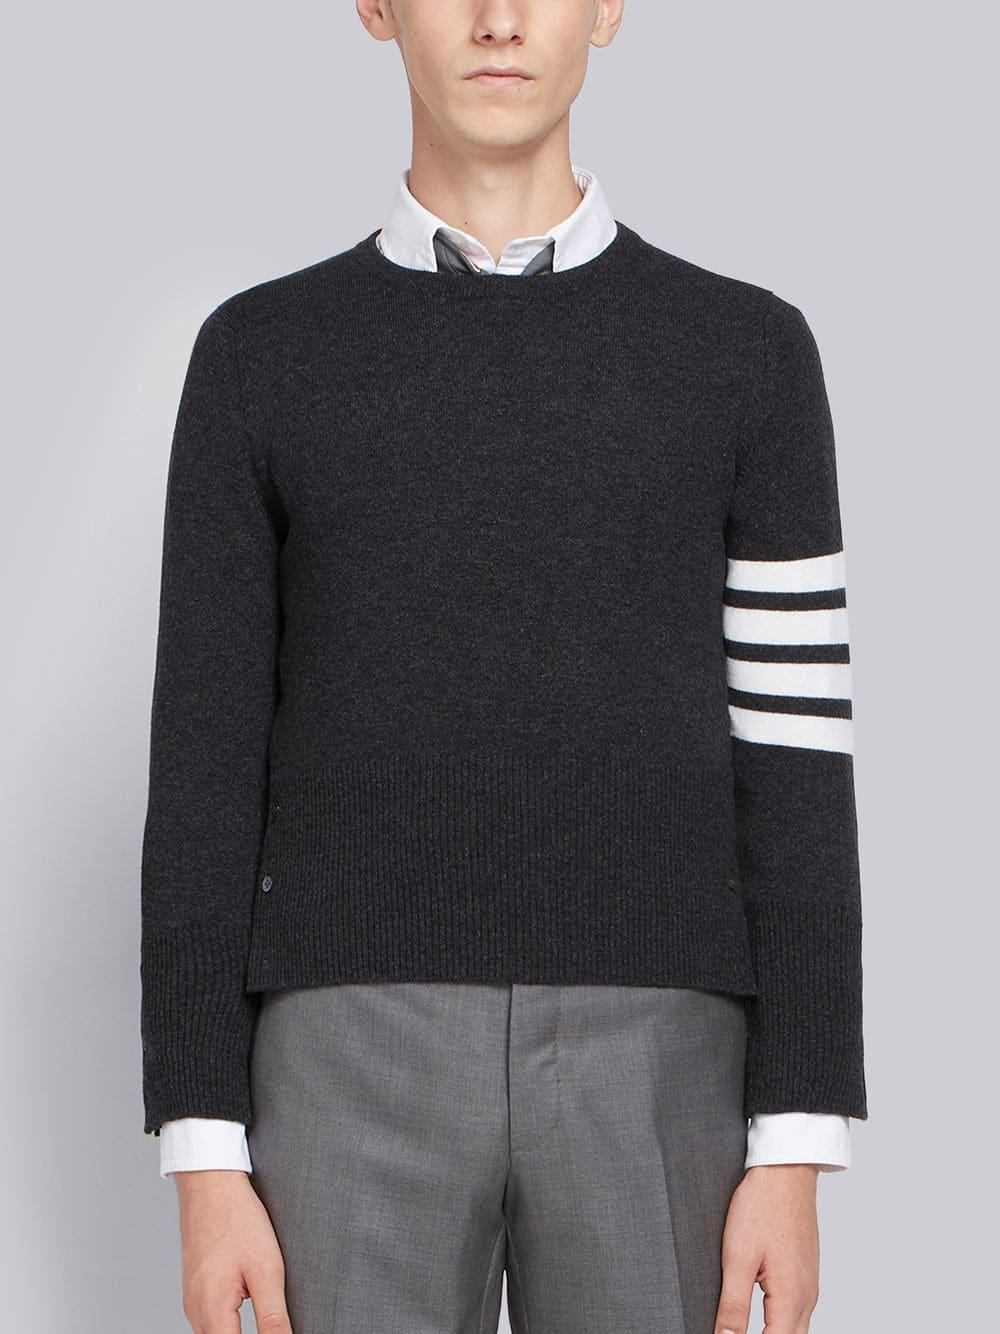 1419bc9471 Thom Browne Contrast Stripe Sweater in Gray for Men - Save 6% - Lyst